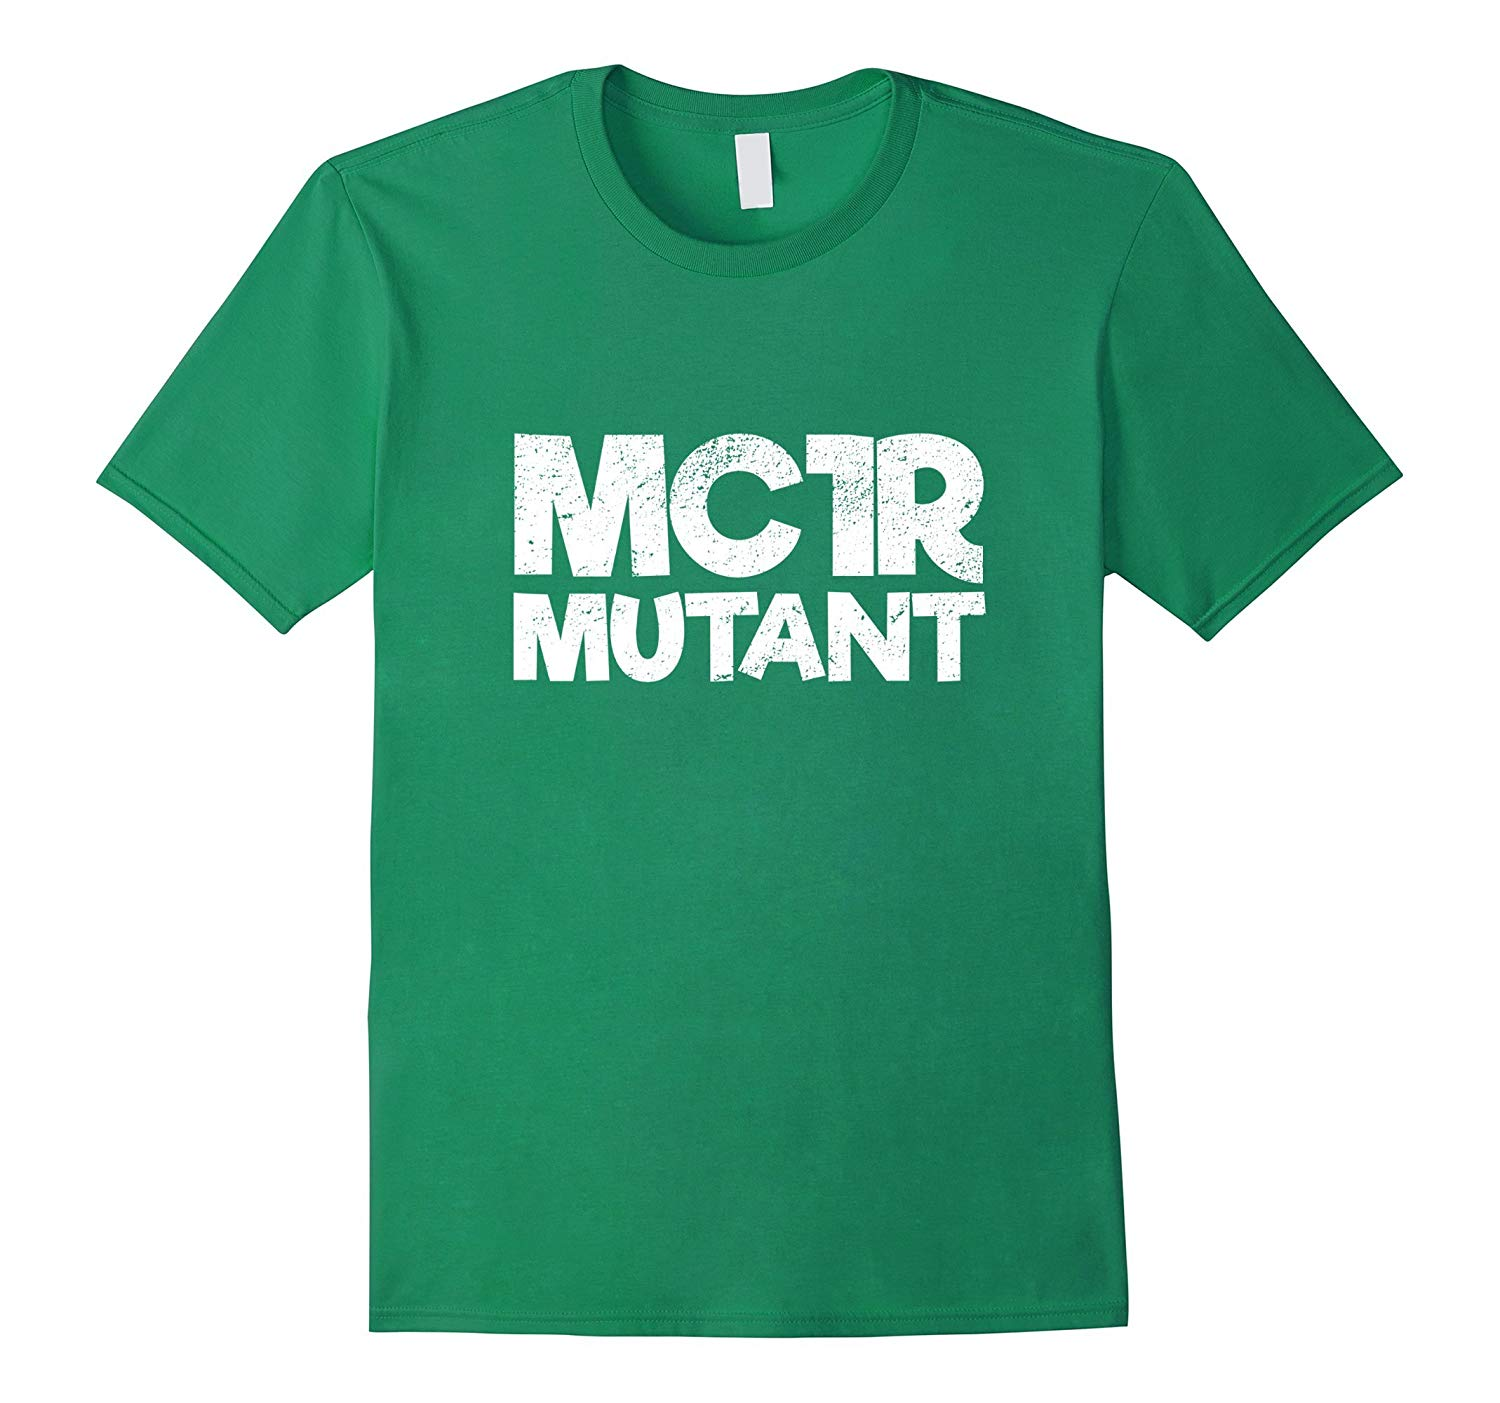 Red Hair shirt - MC1R Mutant